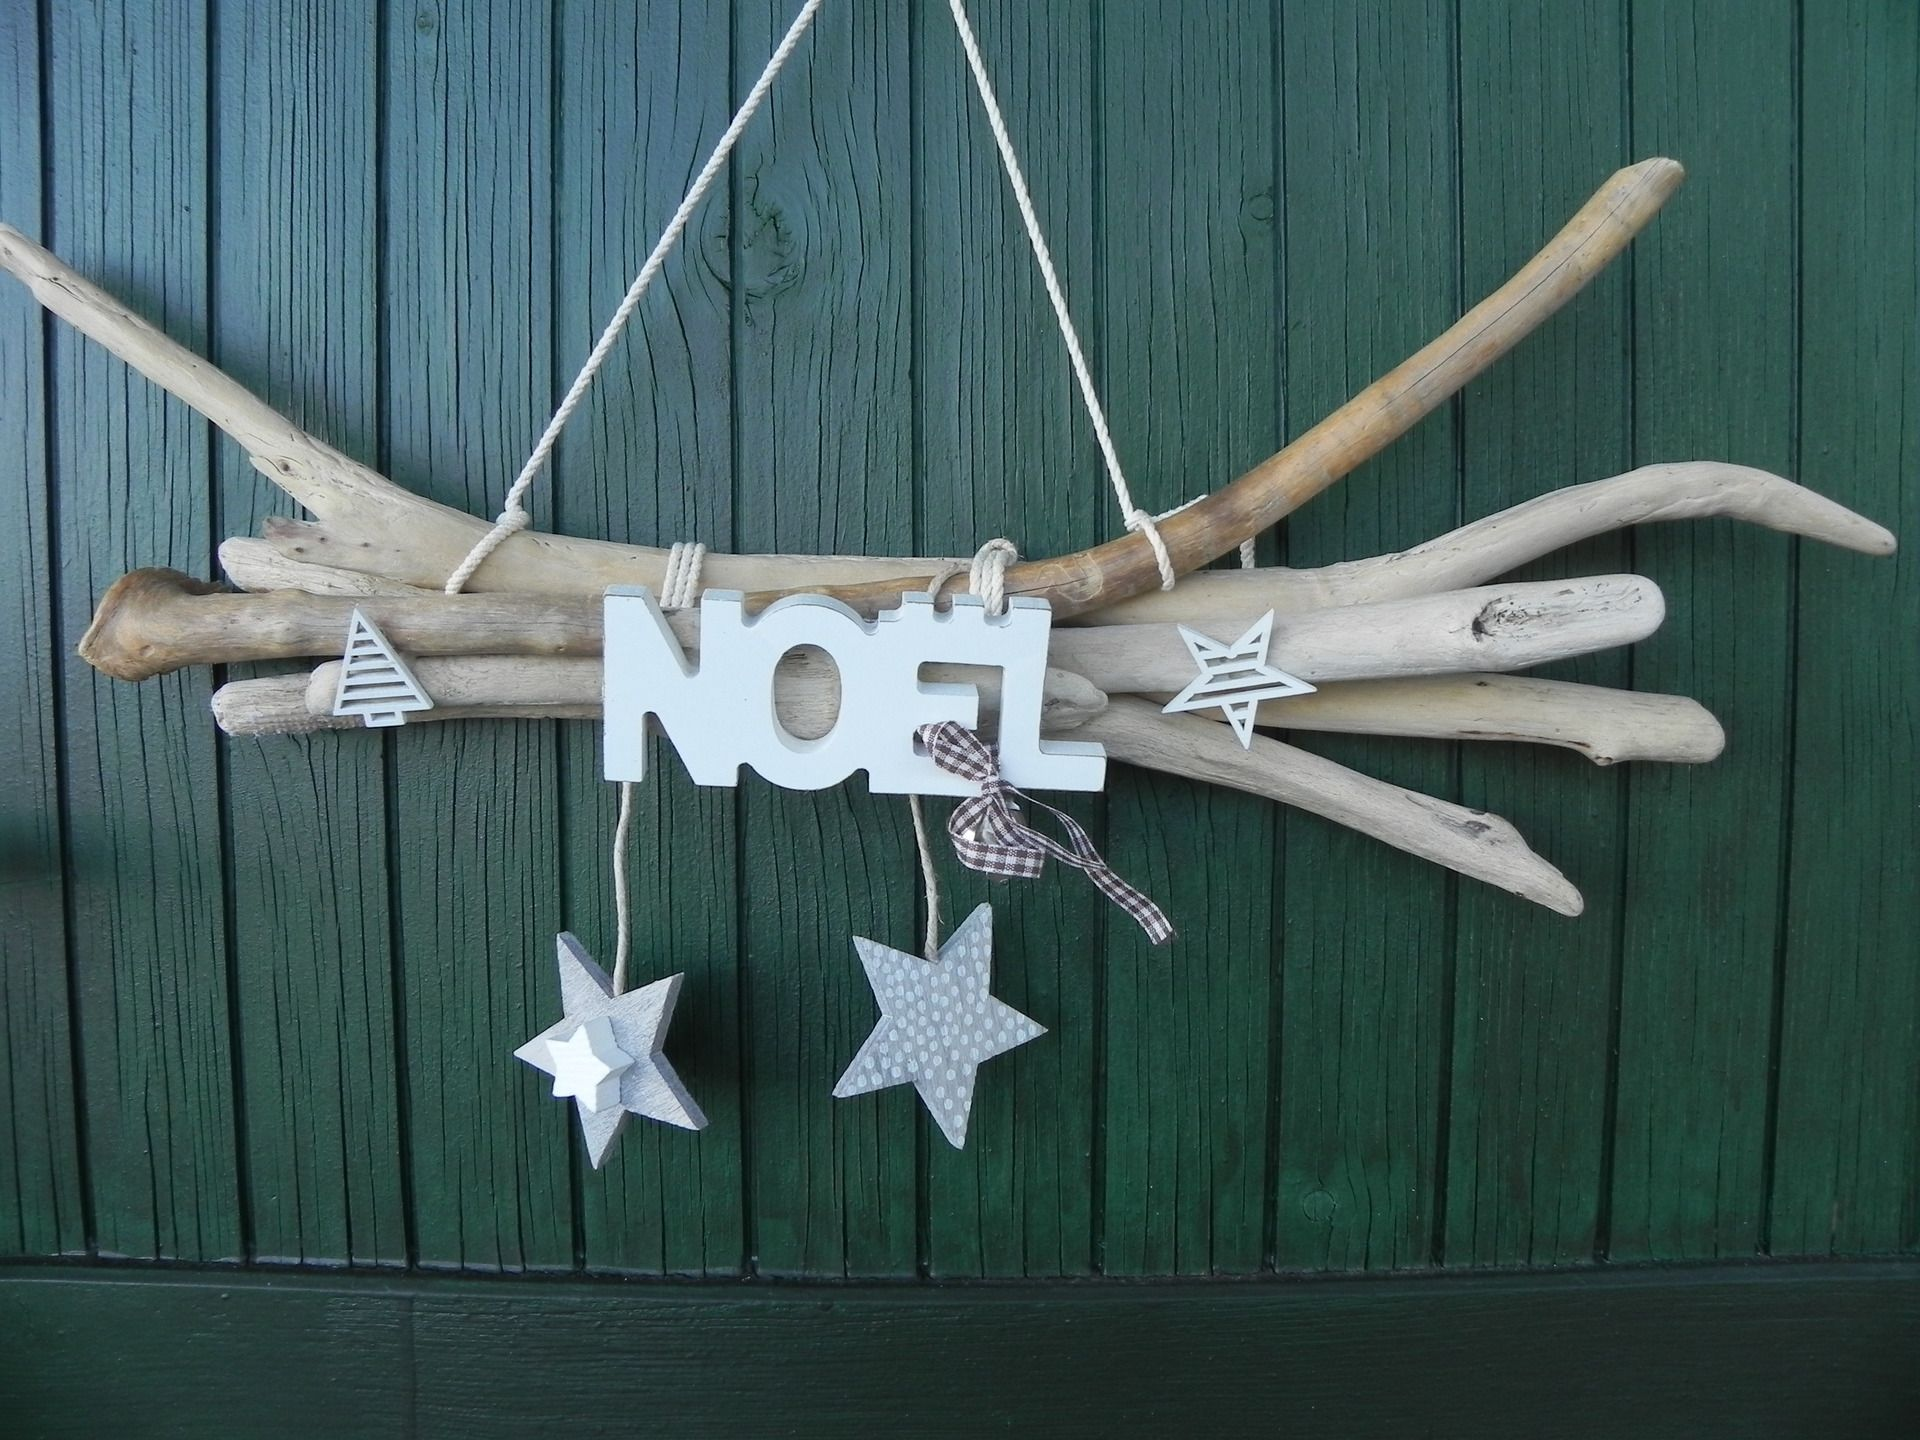 Suspension de porte en bois flott d corations murales for Couronne de noel bois flotte